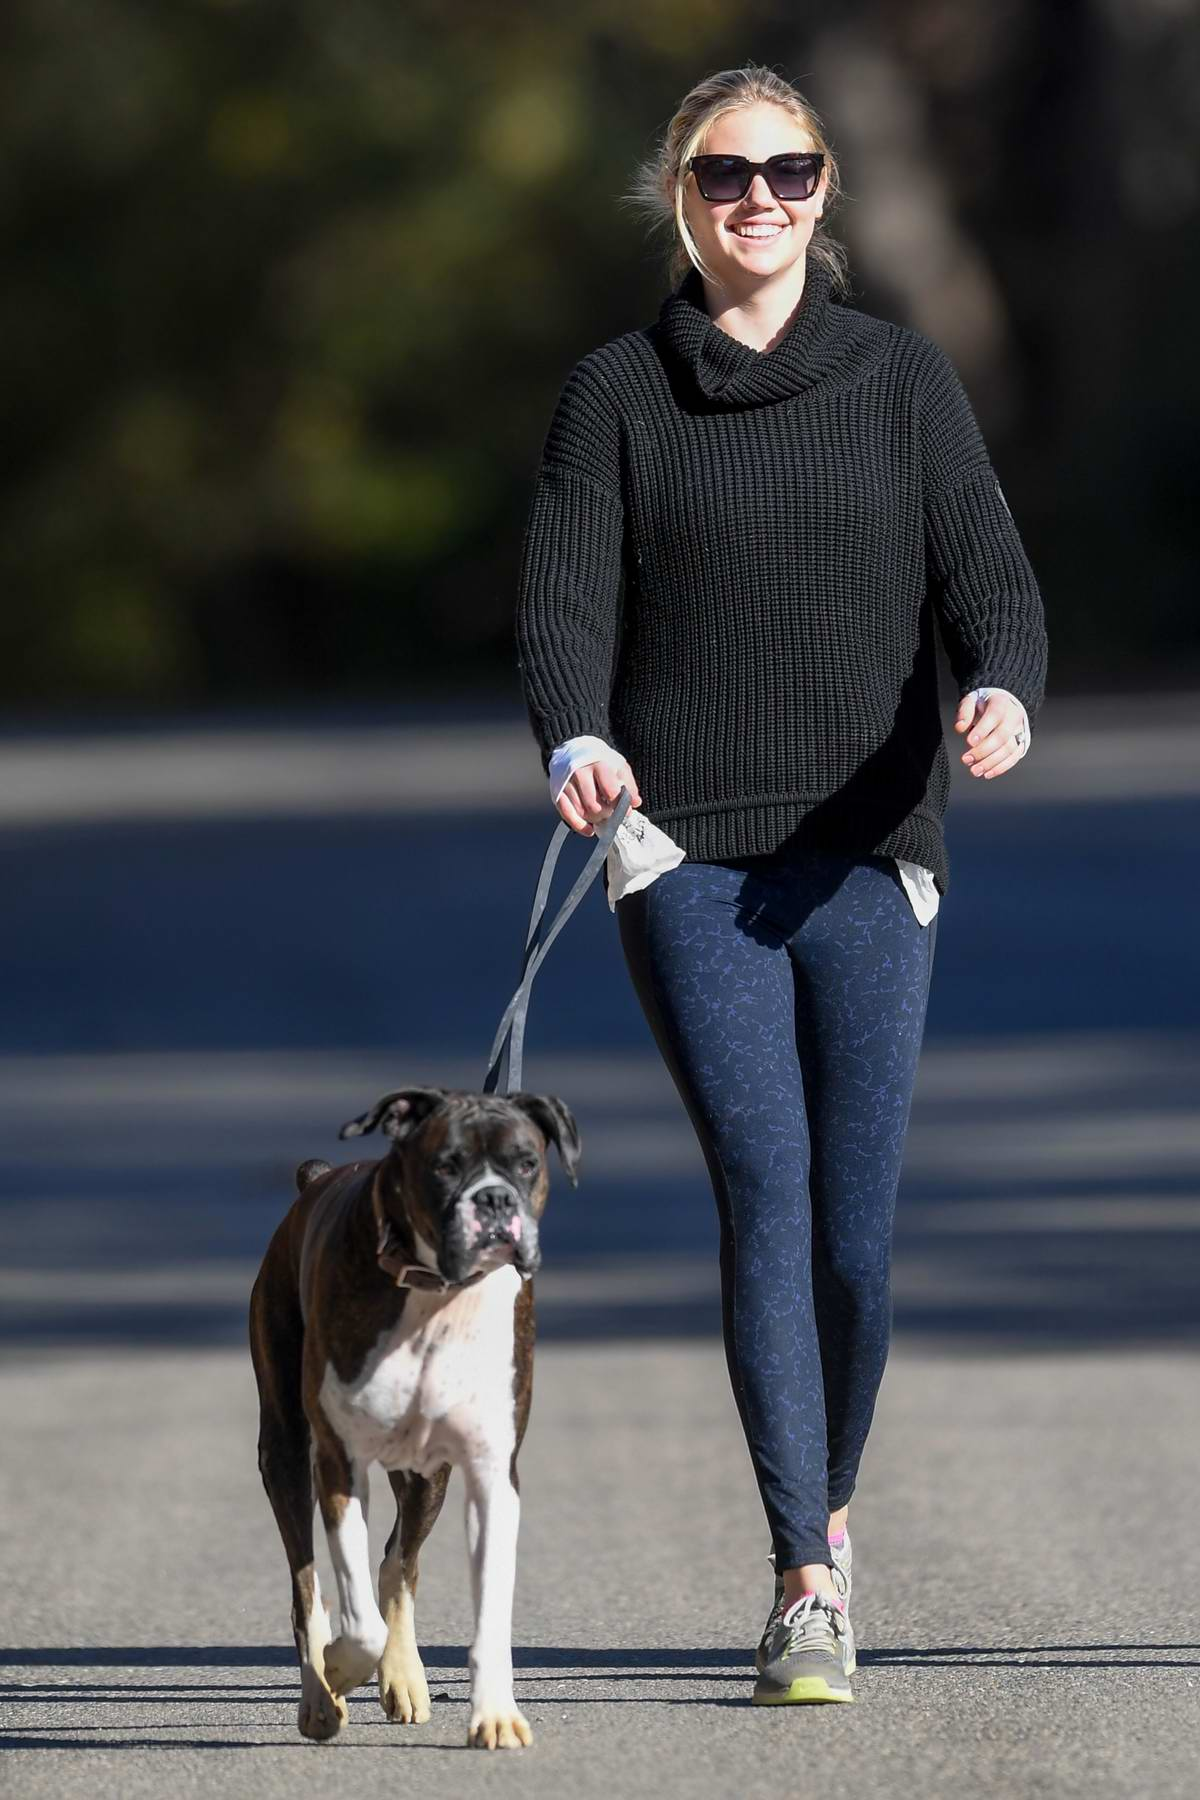 Kate Upton out for a stroll with her dog wearing a black turtleneck sweater and blue leggings in Los Angeles